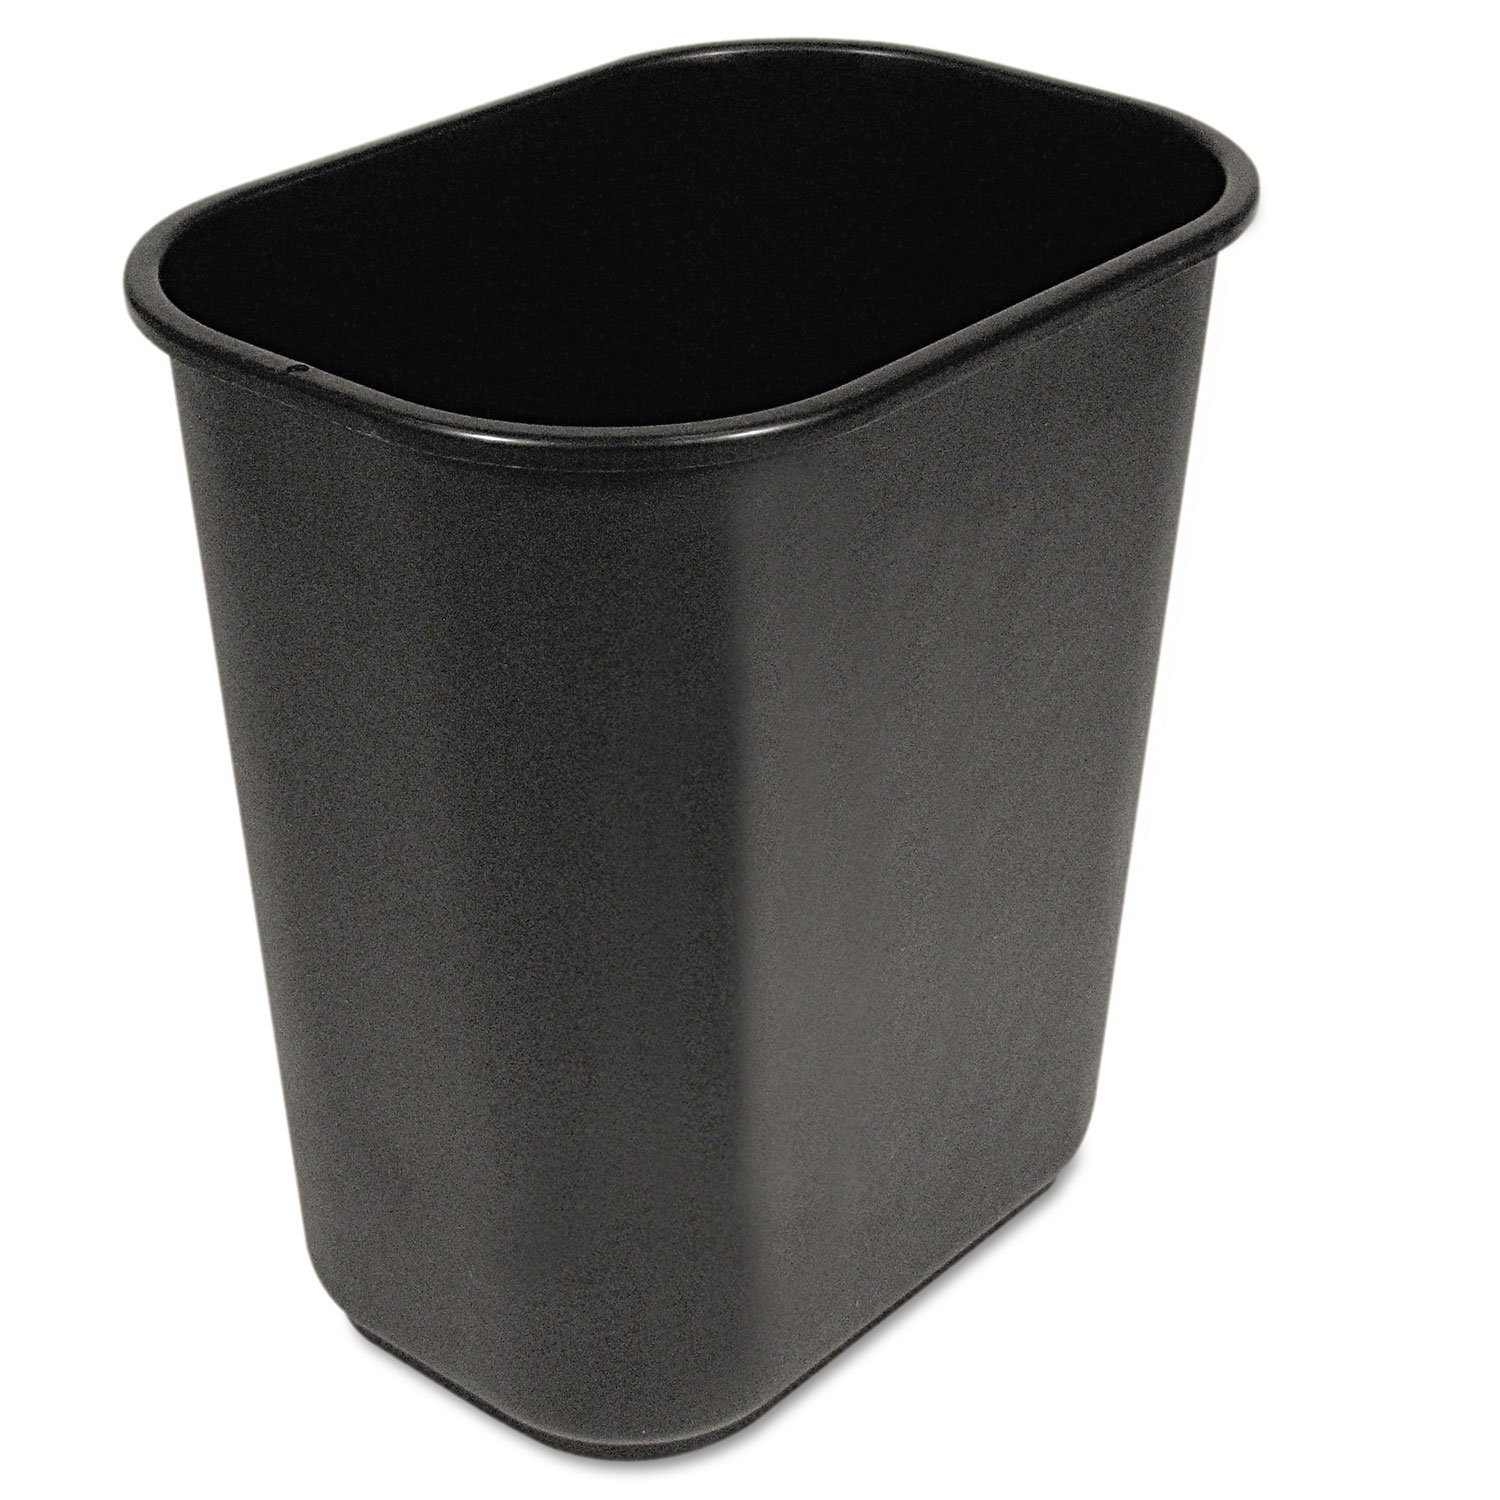 Boardwalk 28QTWBBLA Soft-Sided Wastebasket, 28 quart, Black. by Boardwalk